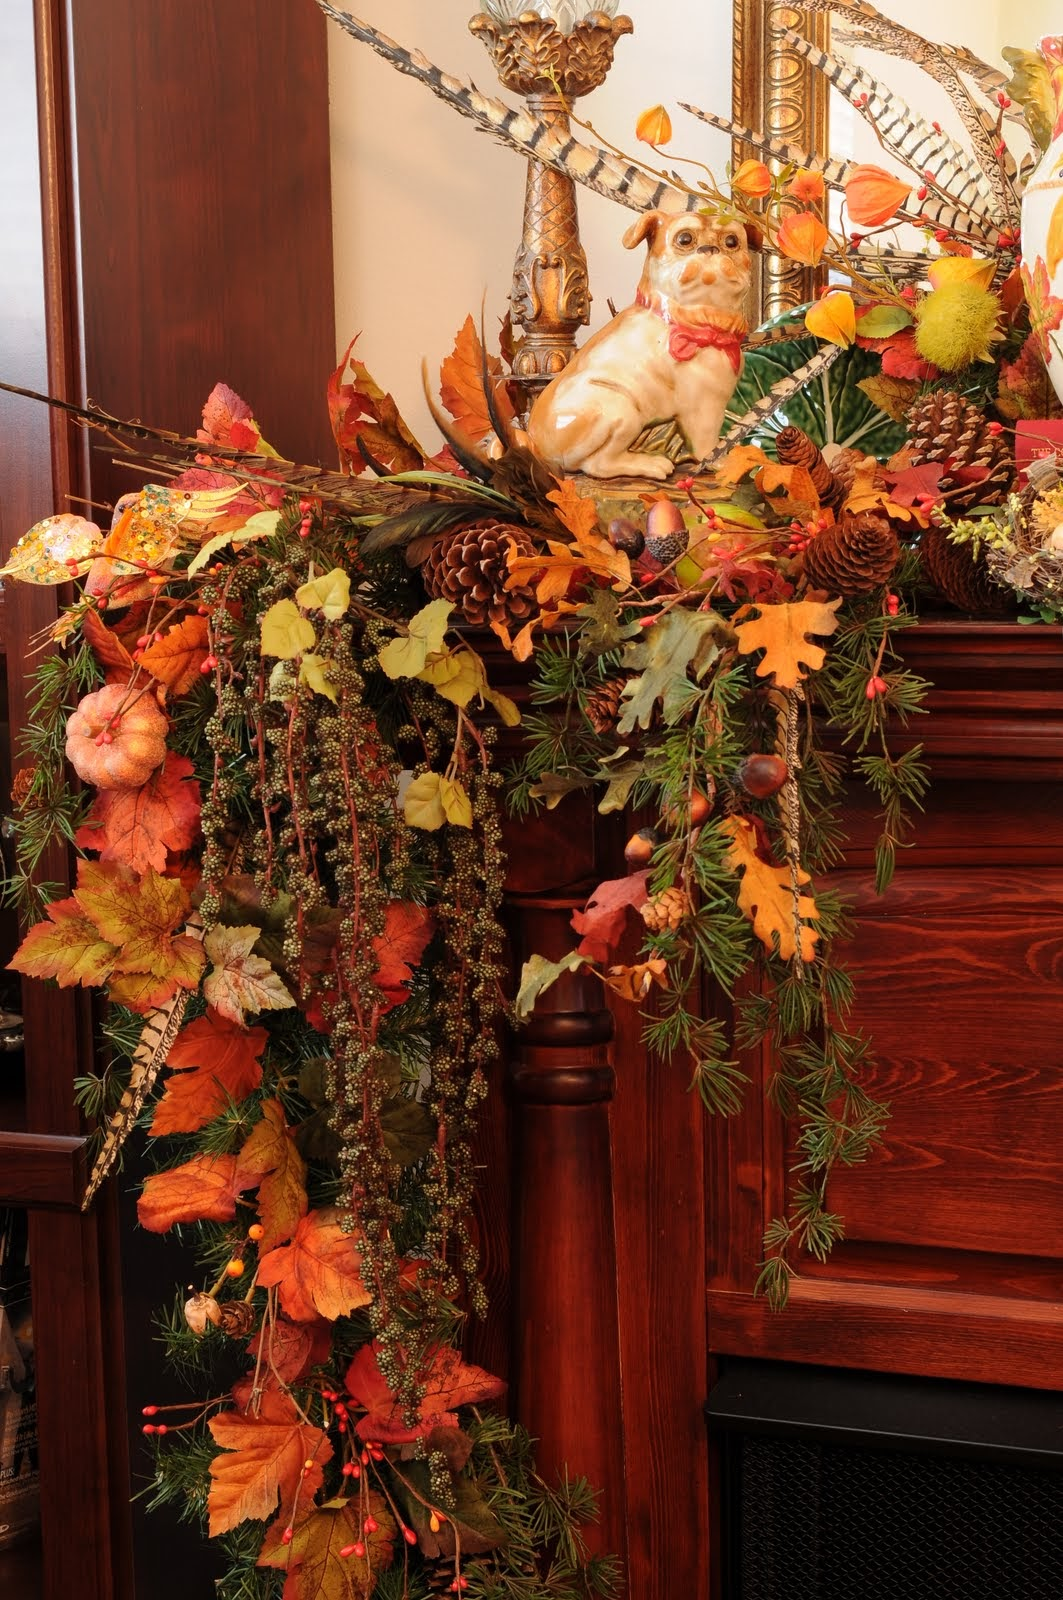 C b i d home decor and design fall decor thanksgiving How to decorate your house for thanksgiving